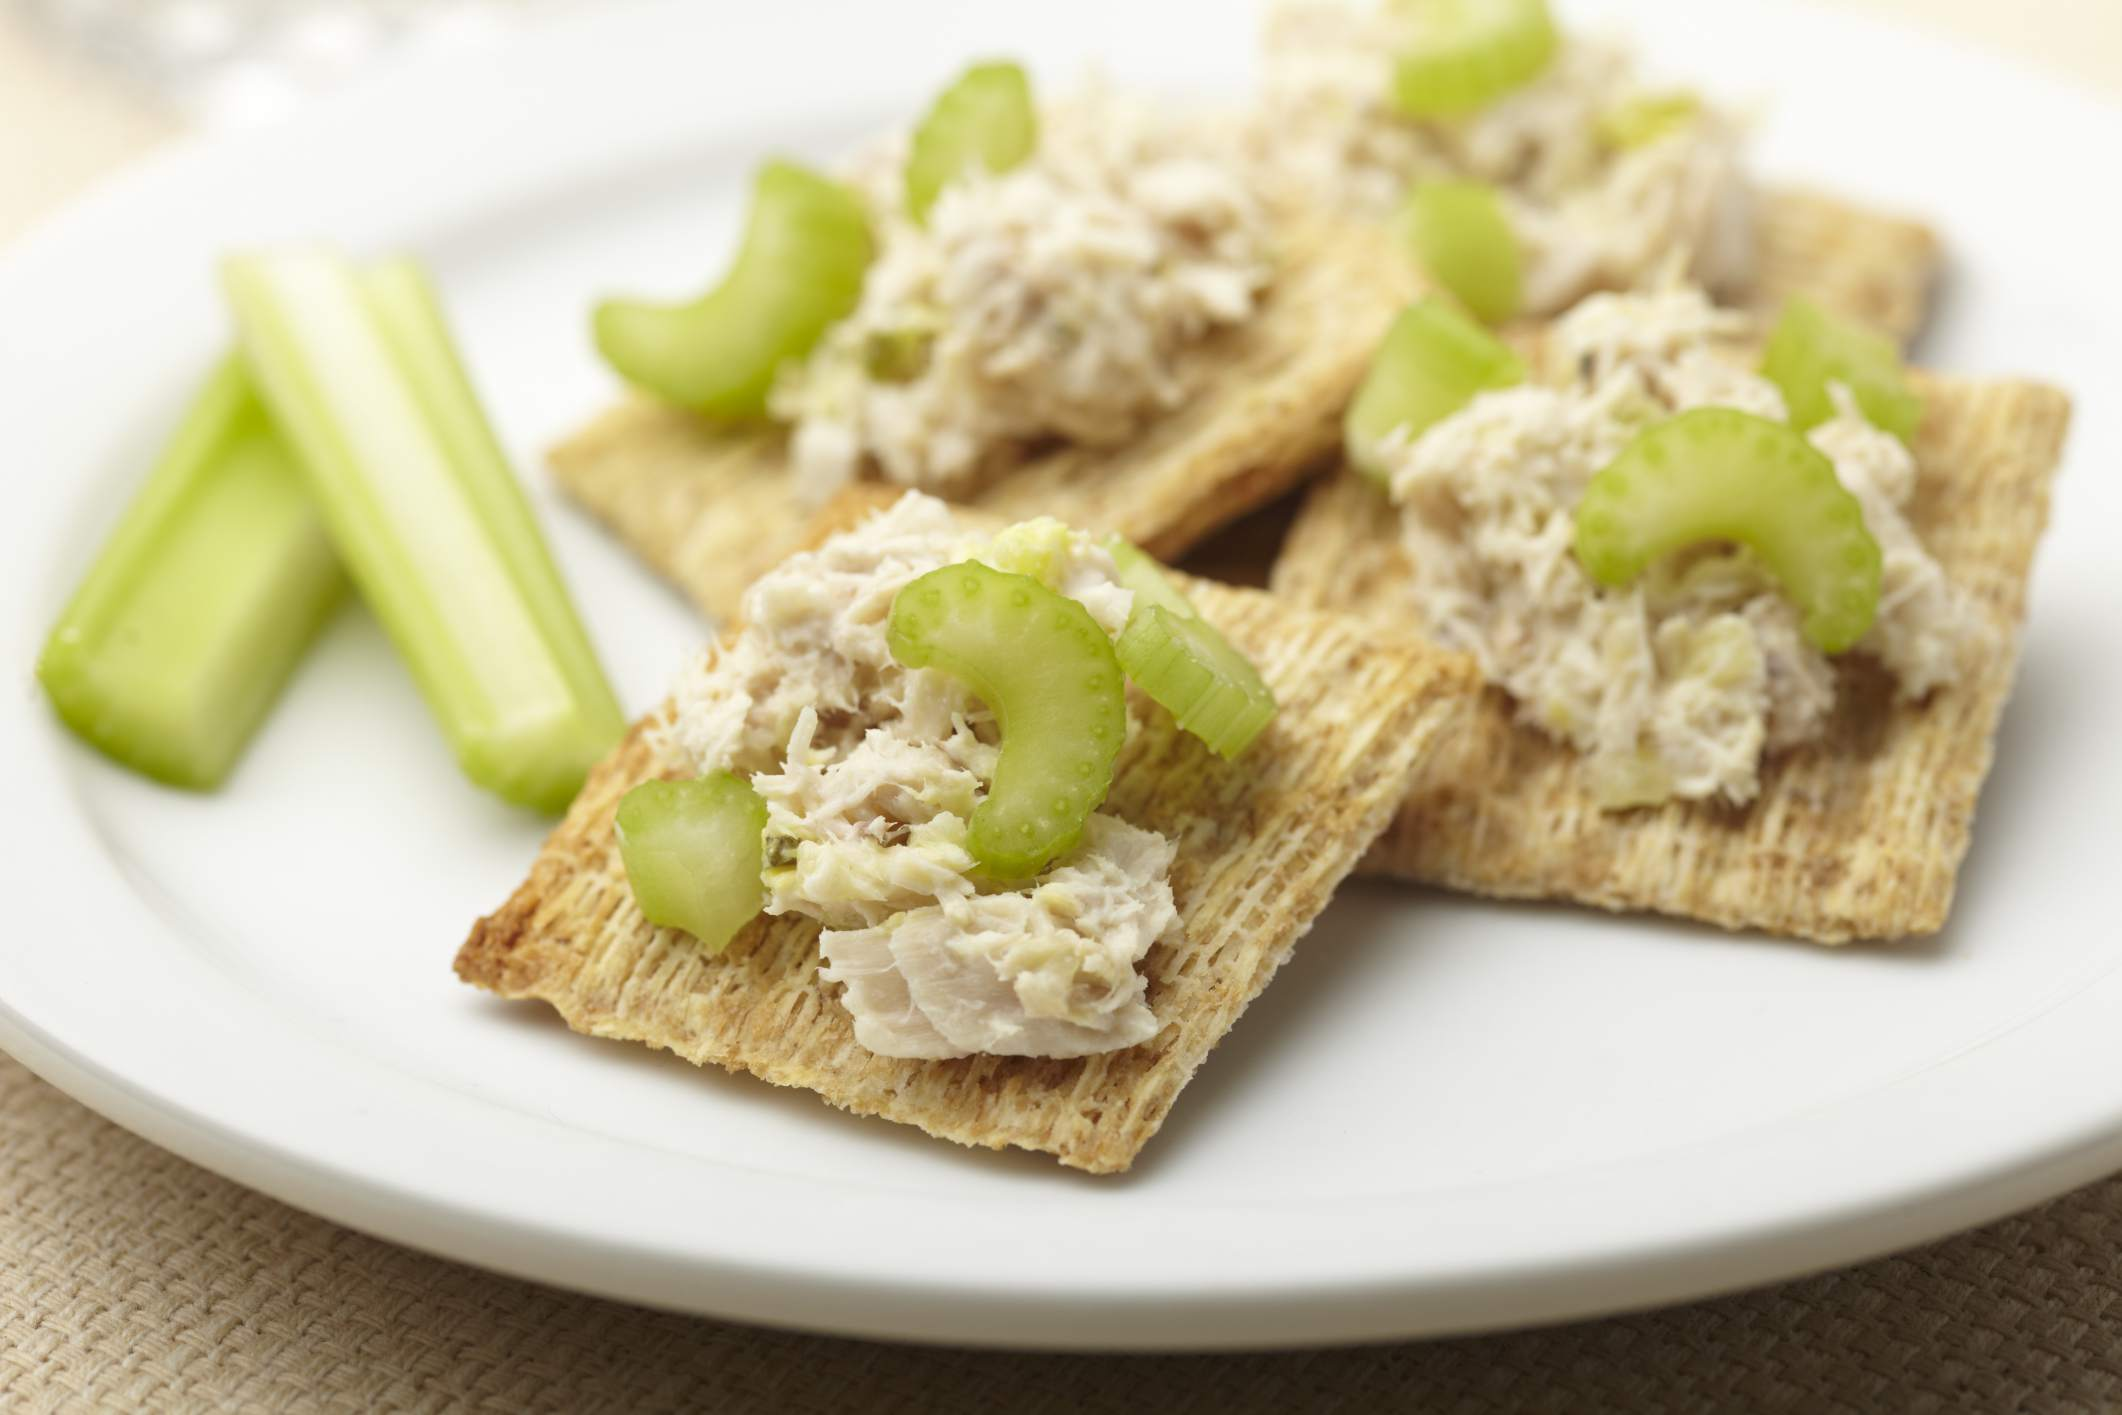 Tuna on crackers makes a healthy snack for work.